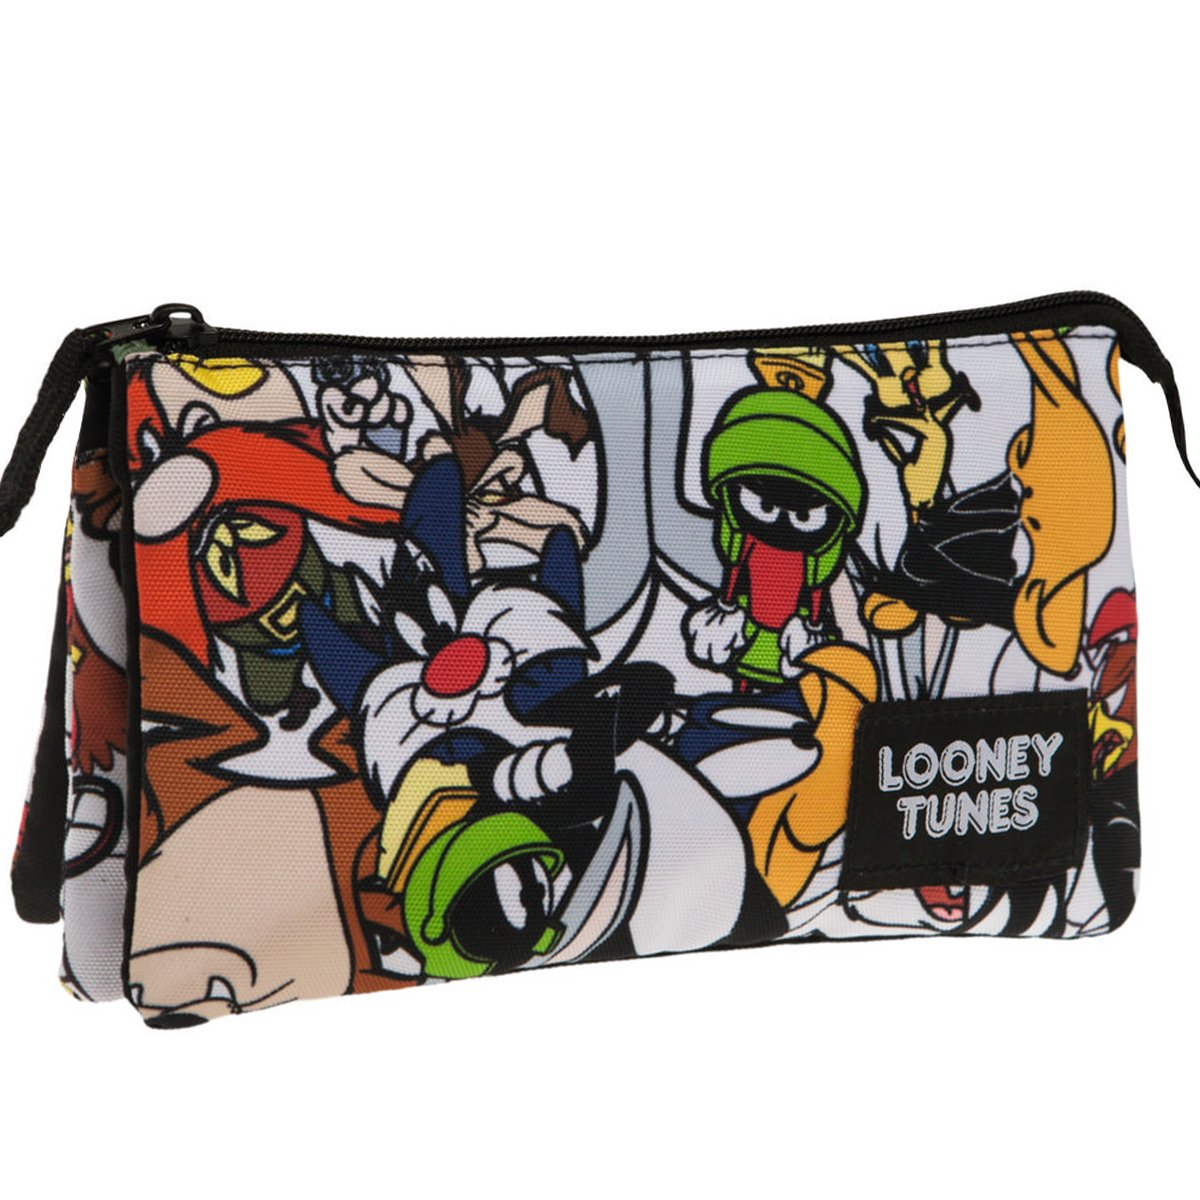 Trousse de toilette 22cm LOONEY TUNES